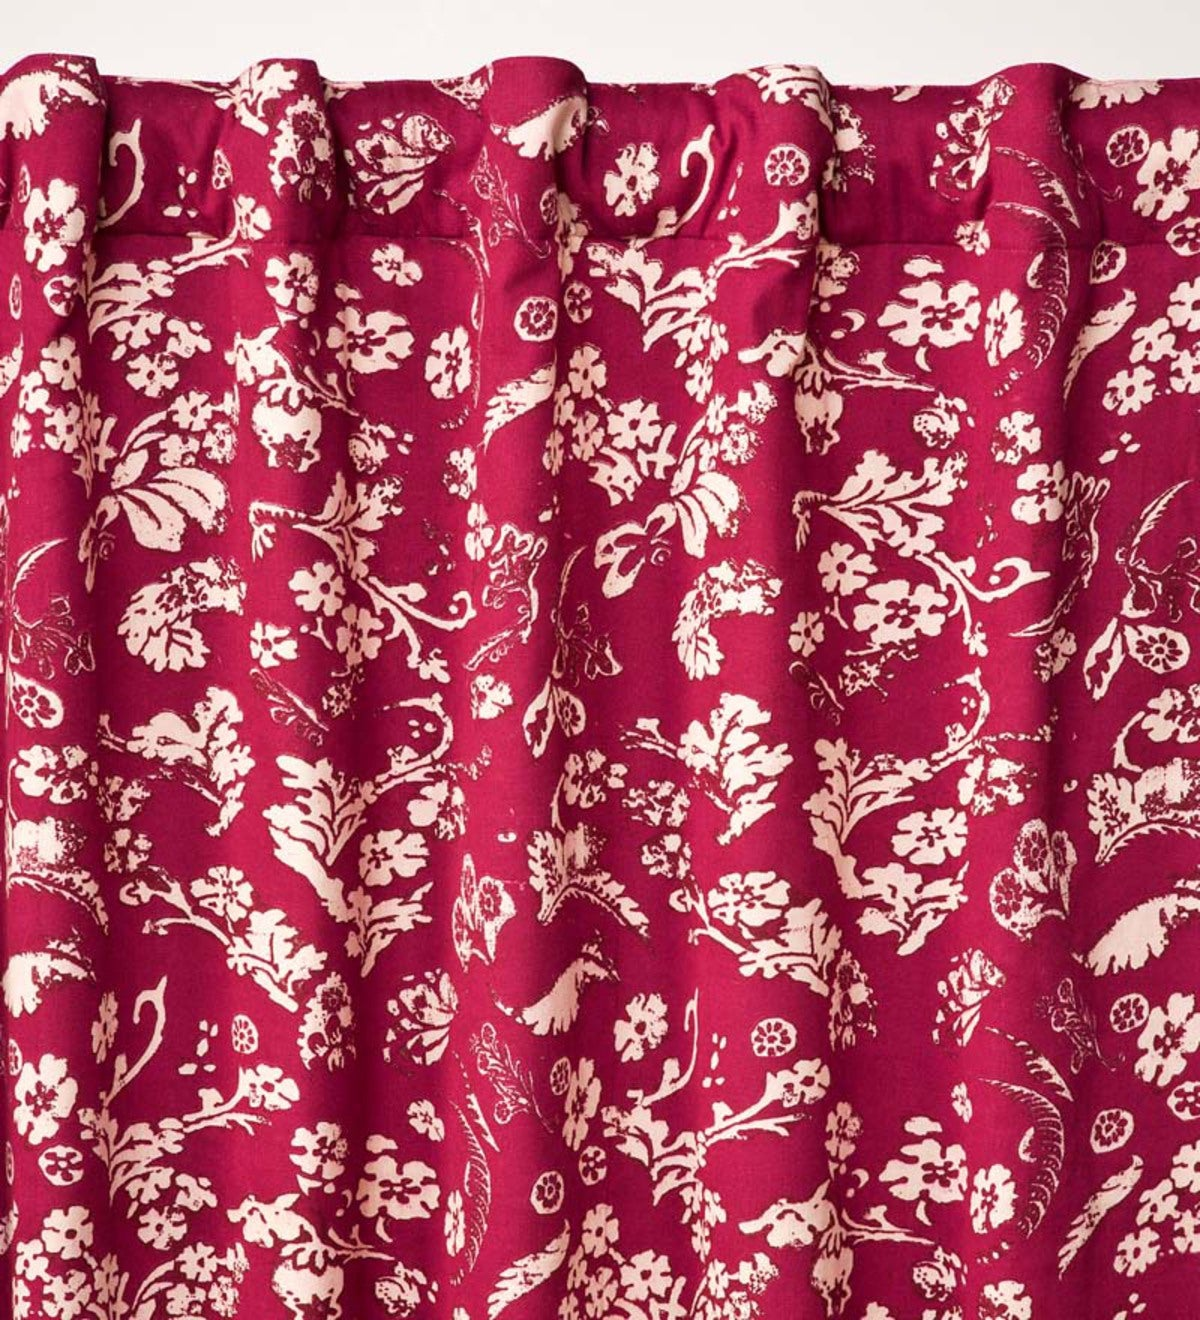 "42""W x 14""L Floral Damask Rod-Pocket Homespun Insulated Curtain Valance"